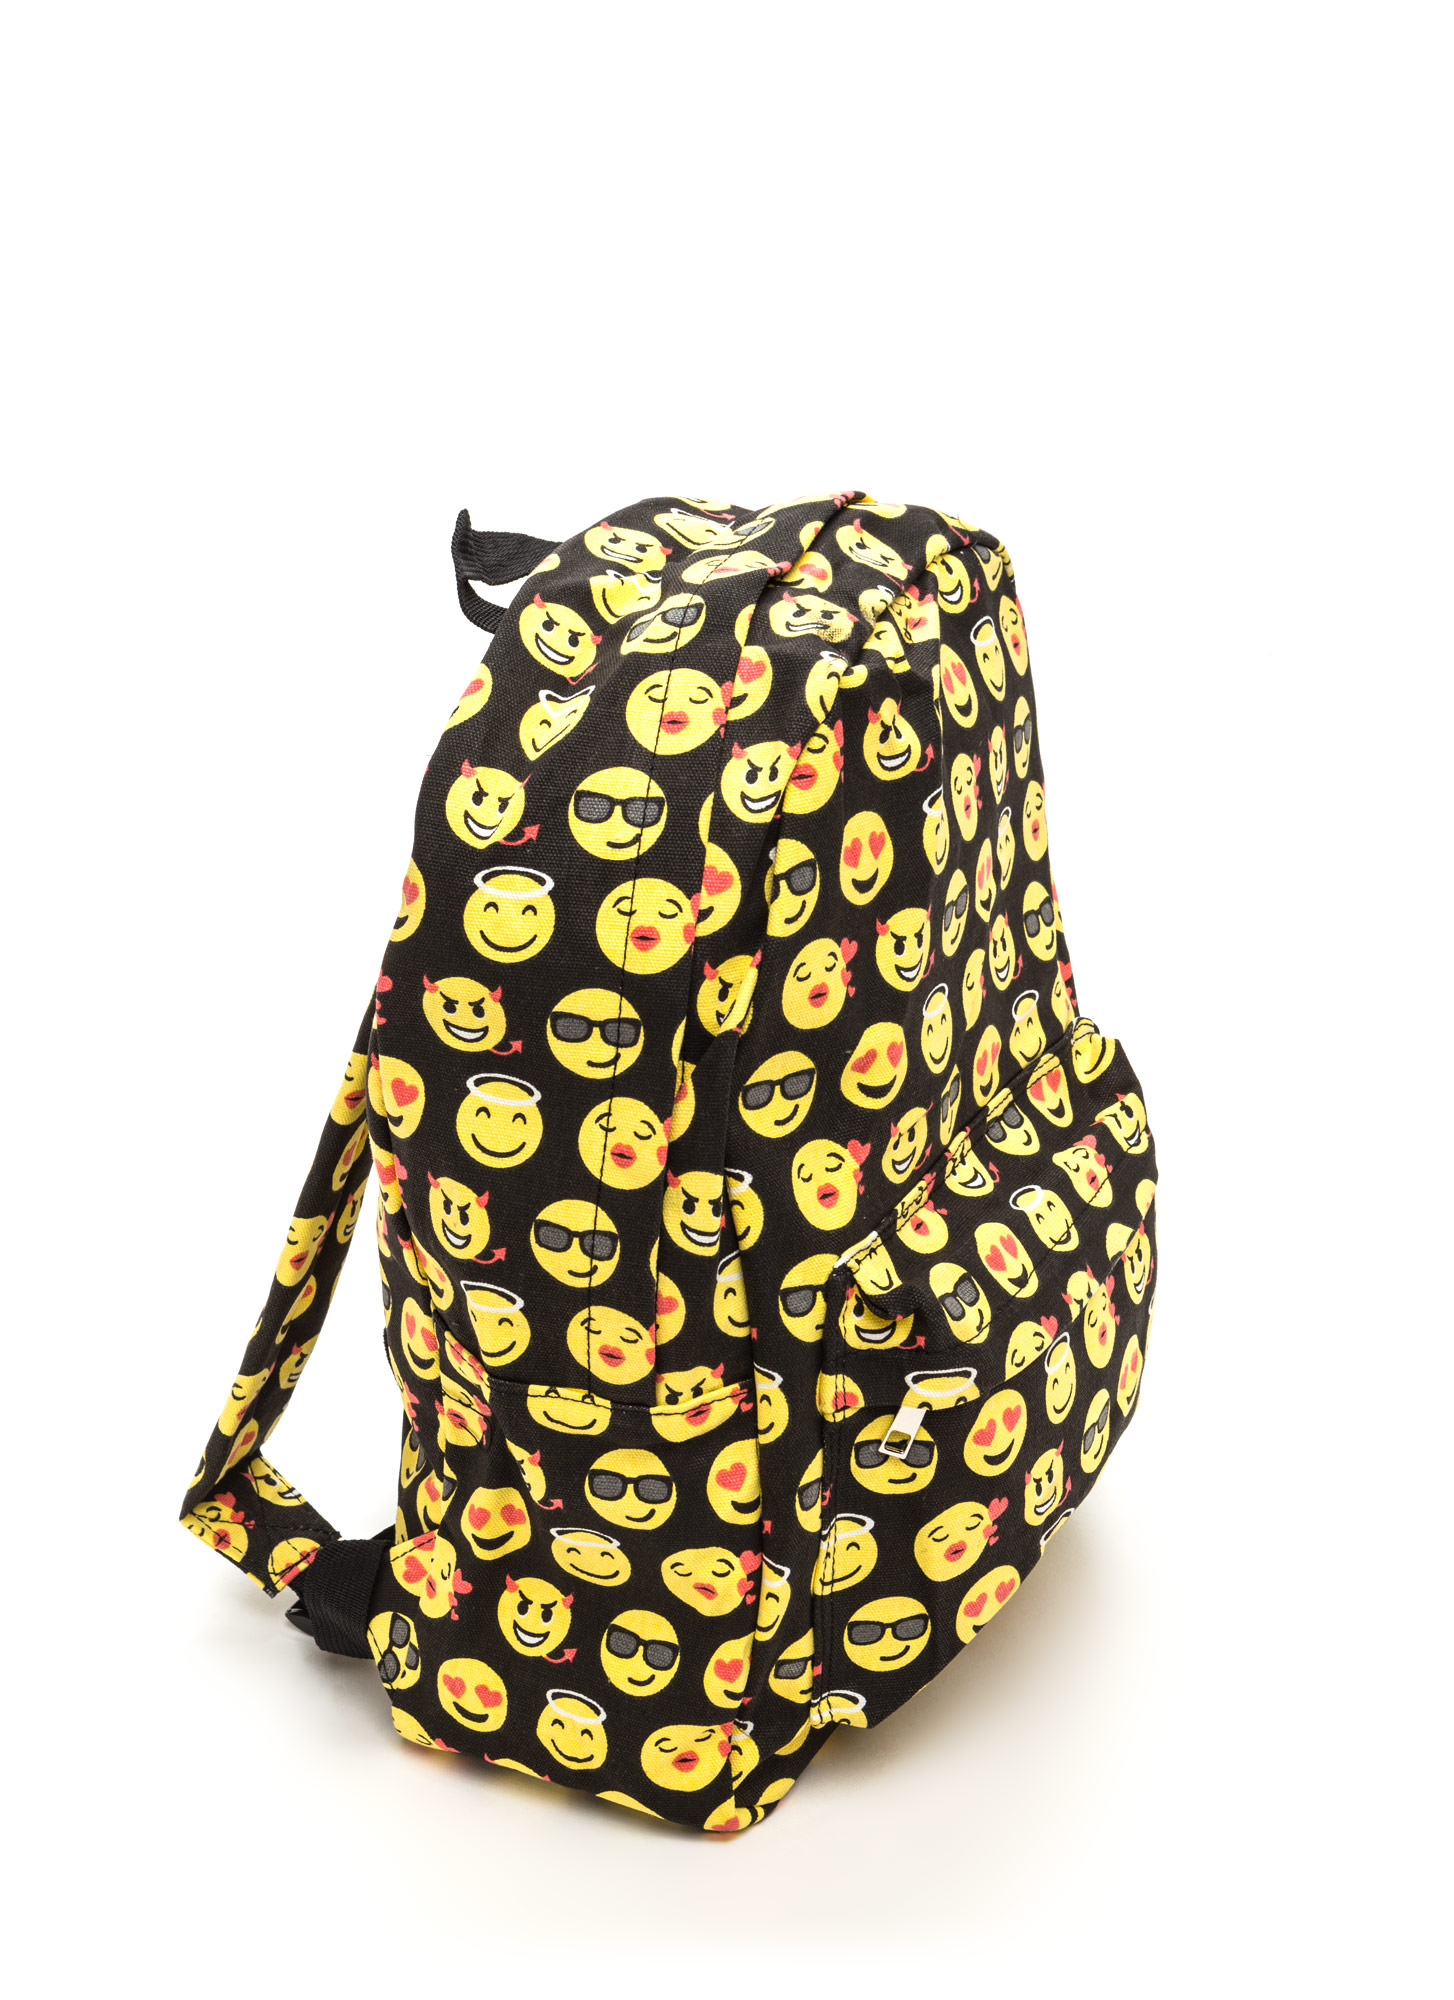 Choked By Emotion Printed Emoji Backpack BLACKMULTI